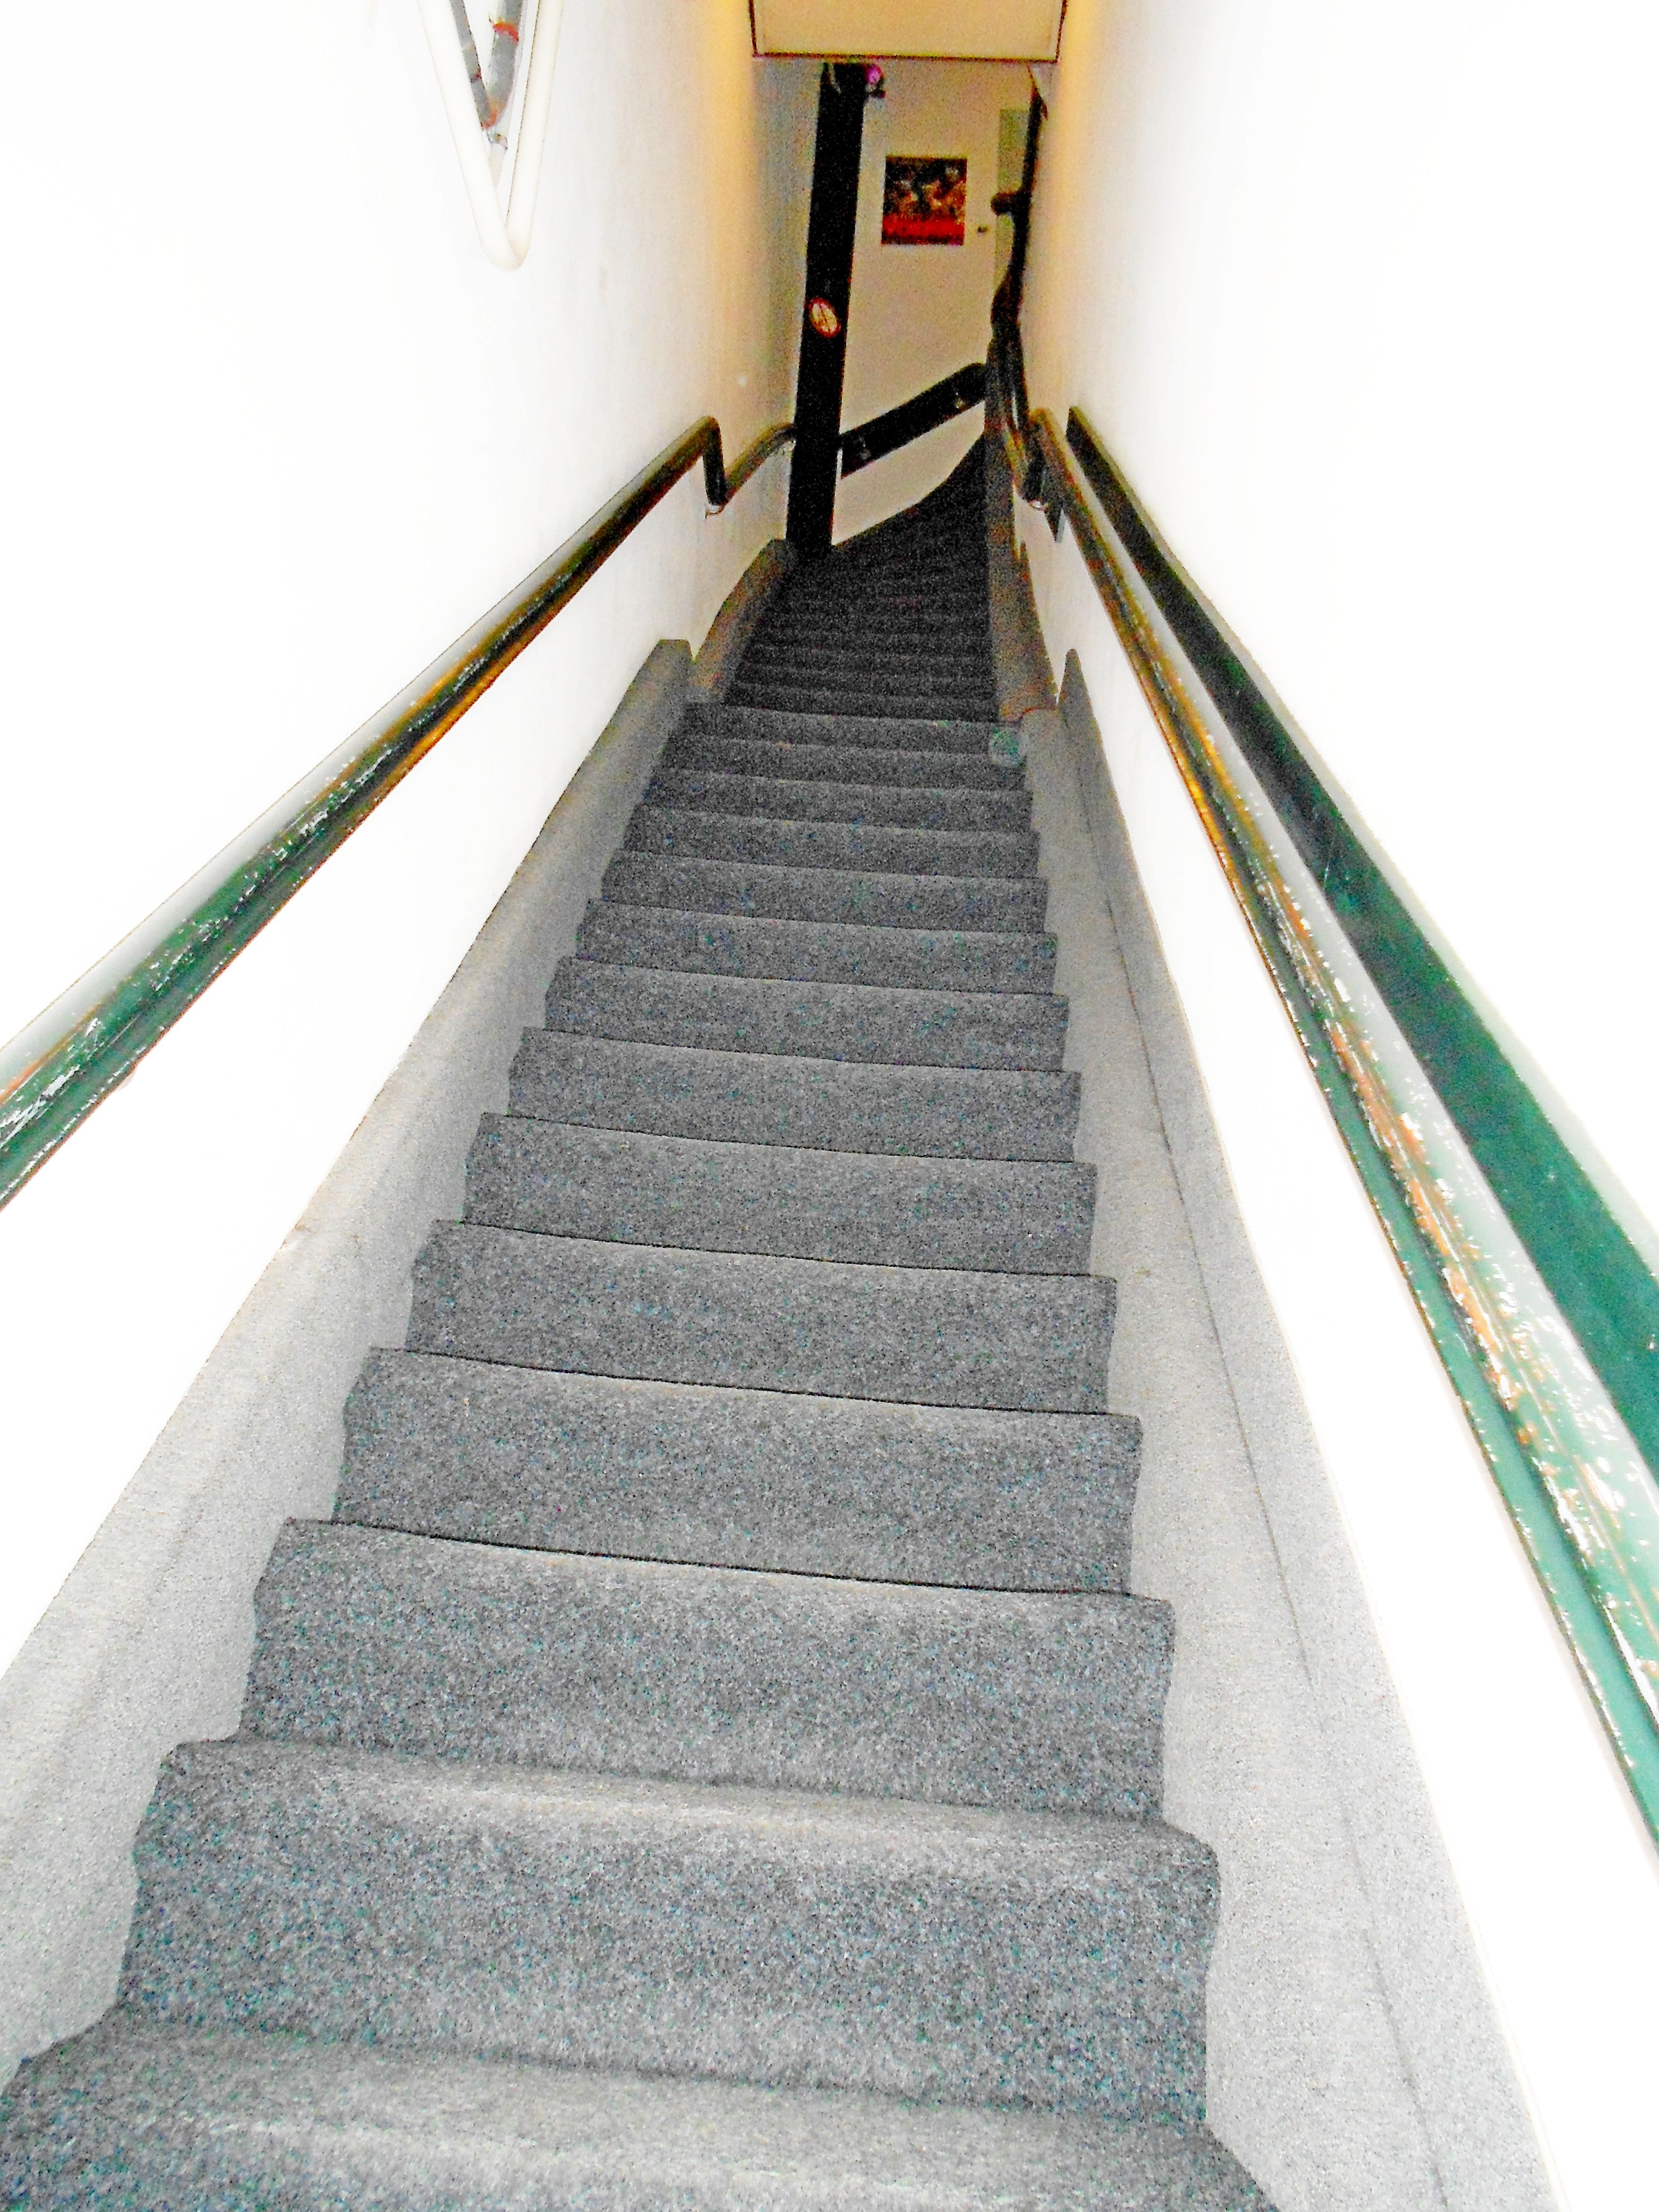 Stairway to guest house in Amsterdam. Seemed to go on